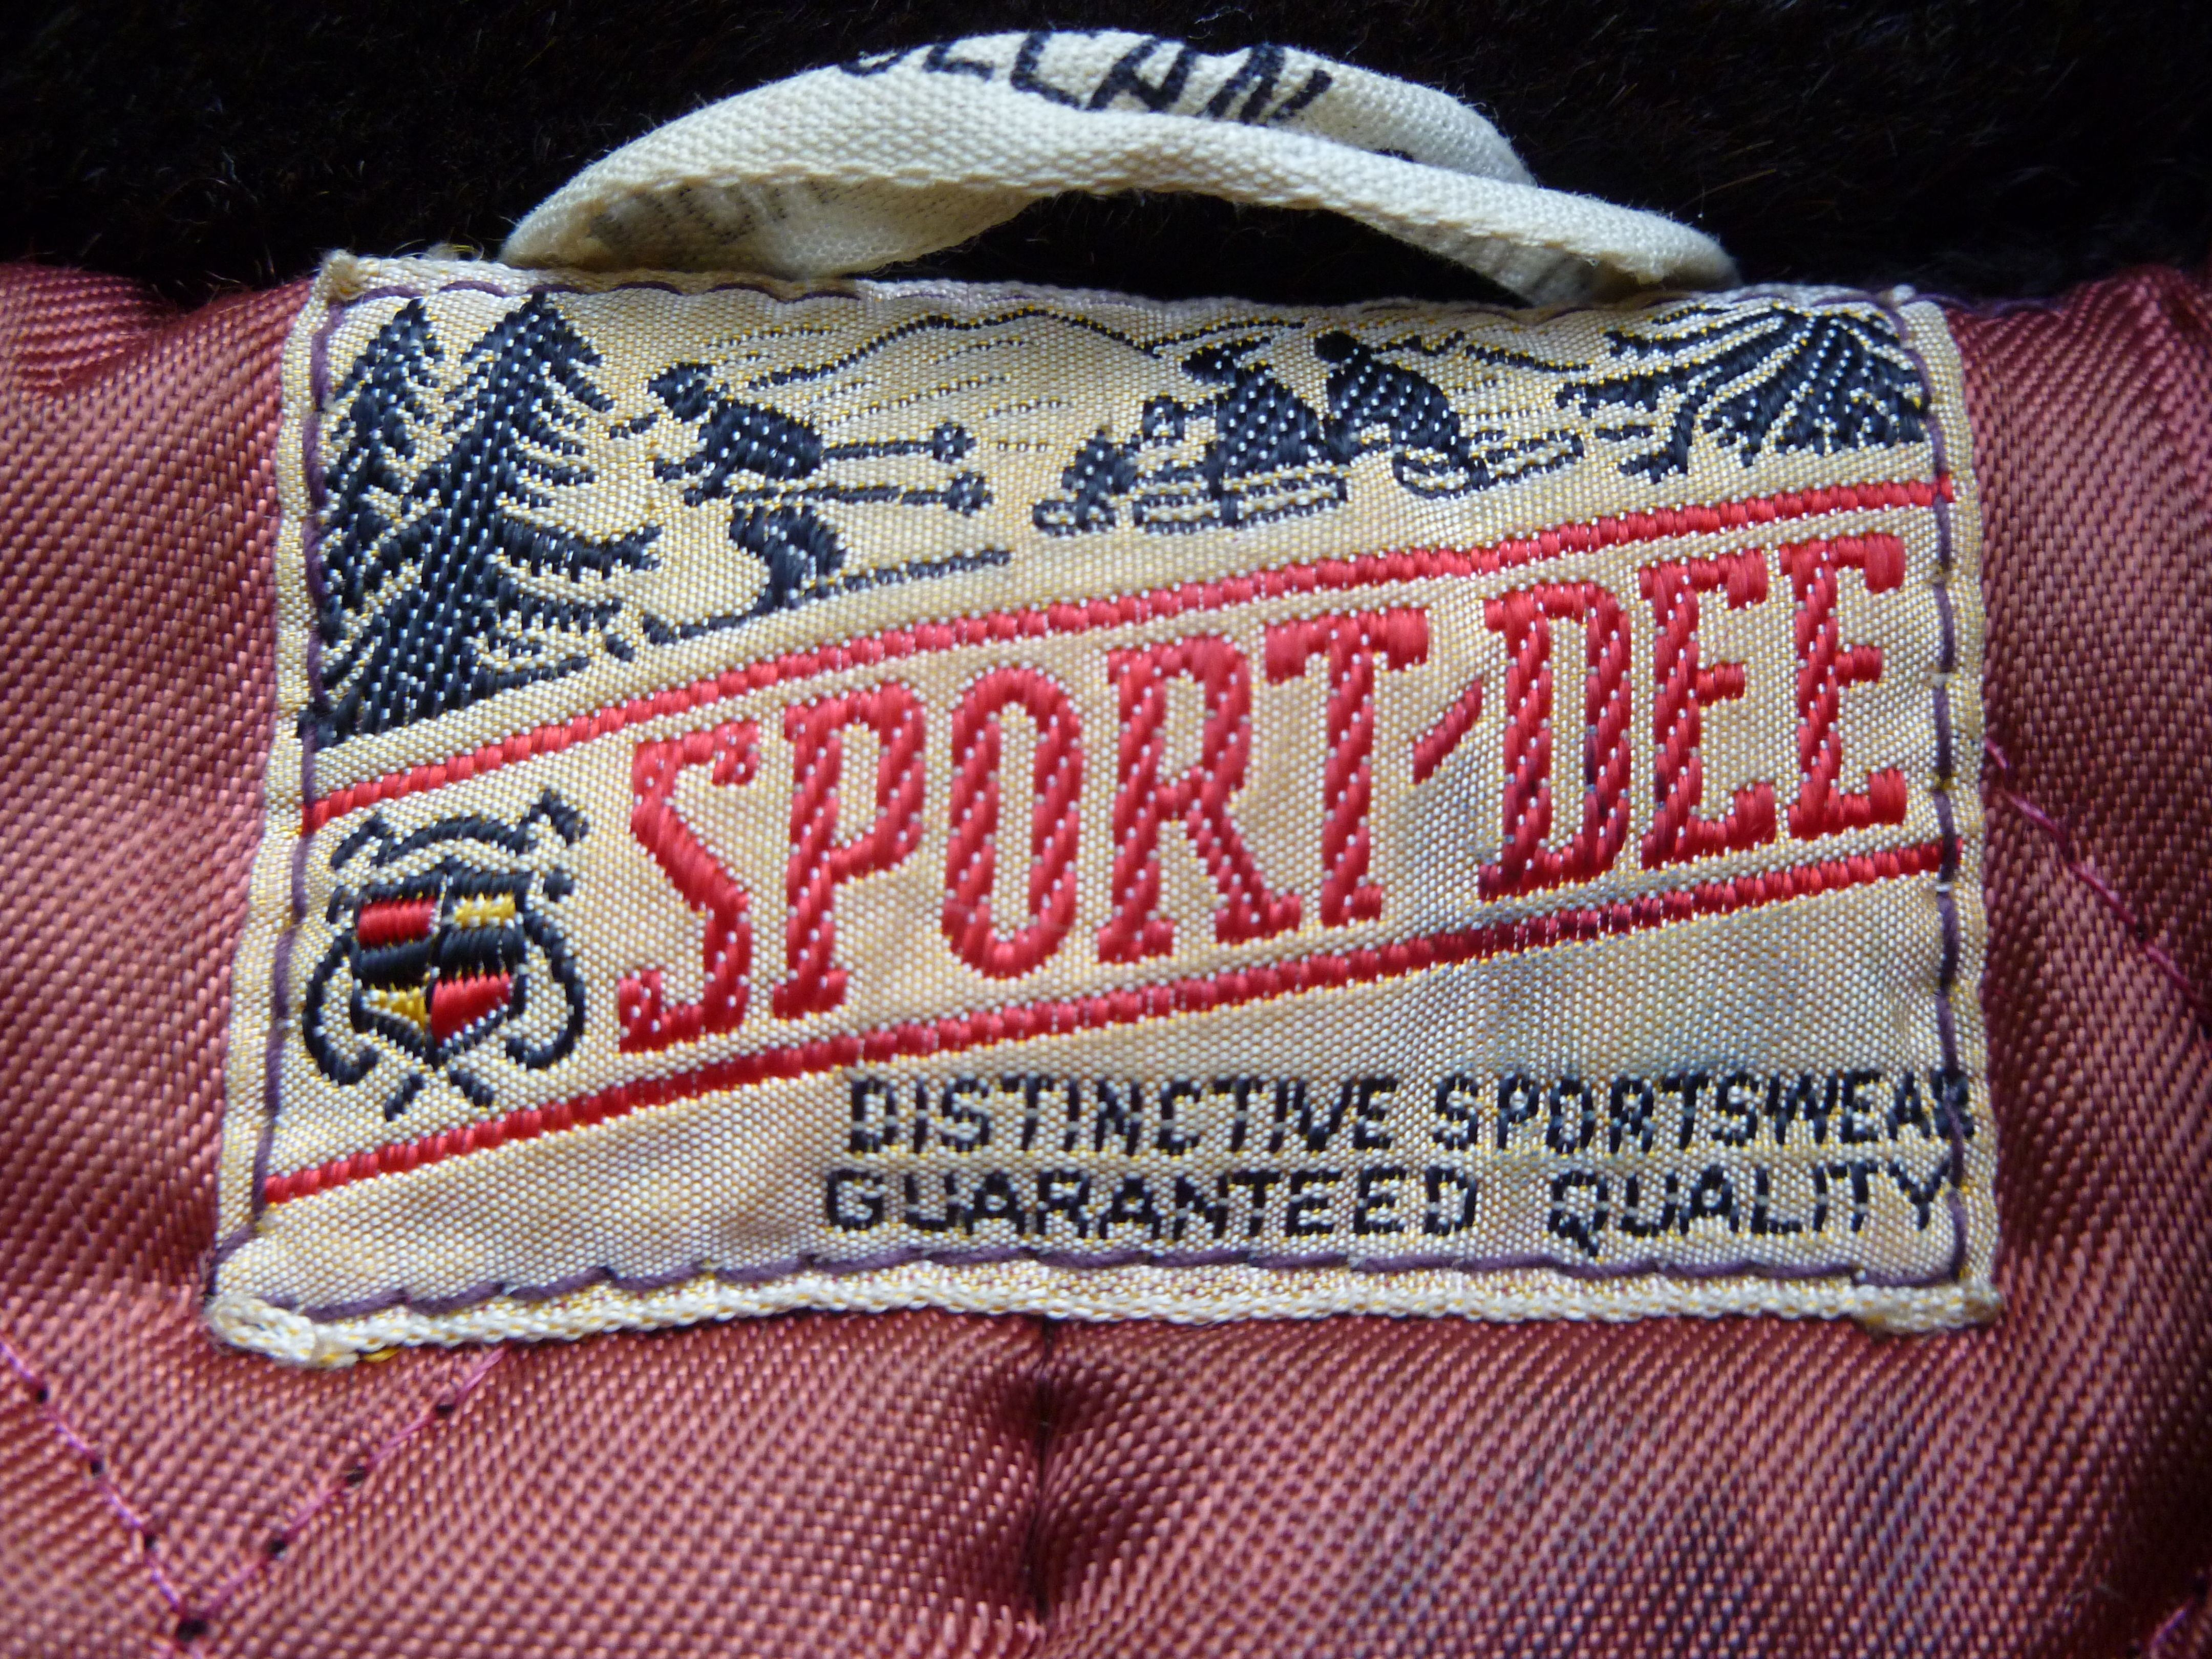 Sport Dee Clothing Label Clothing Labels Vintage Outfits Woven Labels